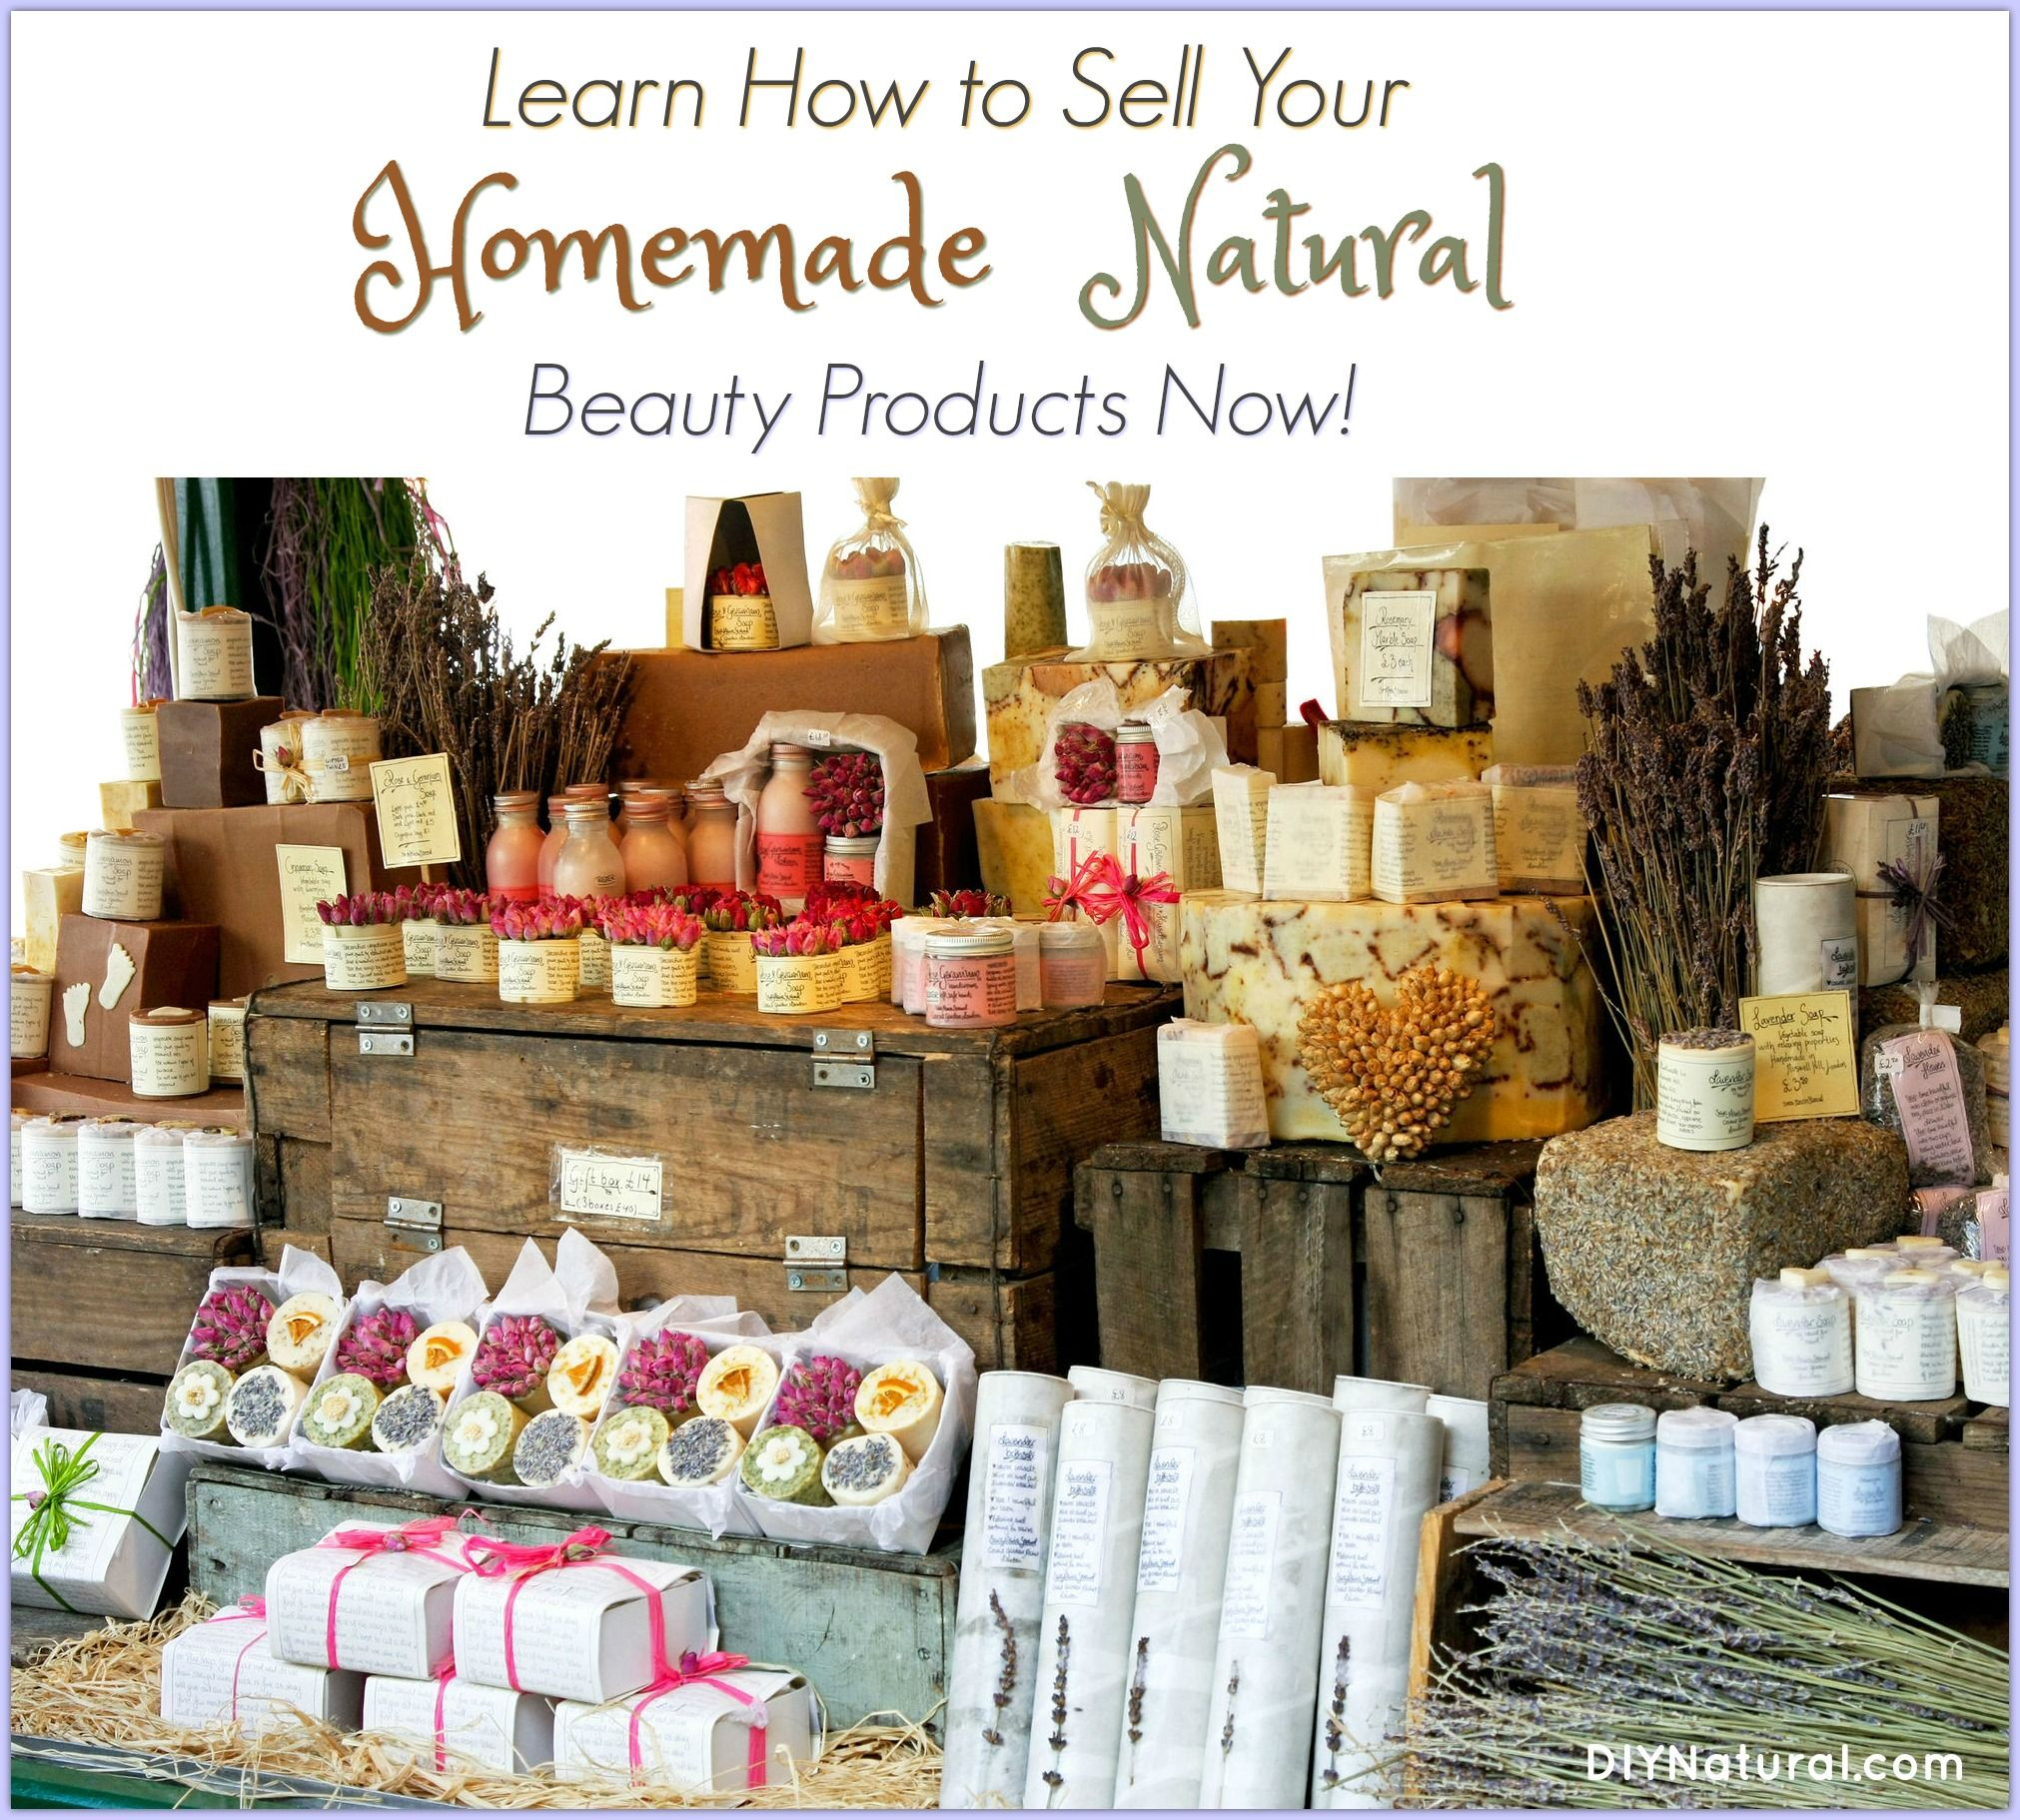 How To Sell Homemade Products Health And Beauty Edition Things To Sell Homemade Beauty Products Homemade Beauty